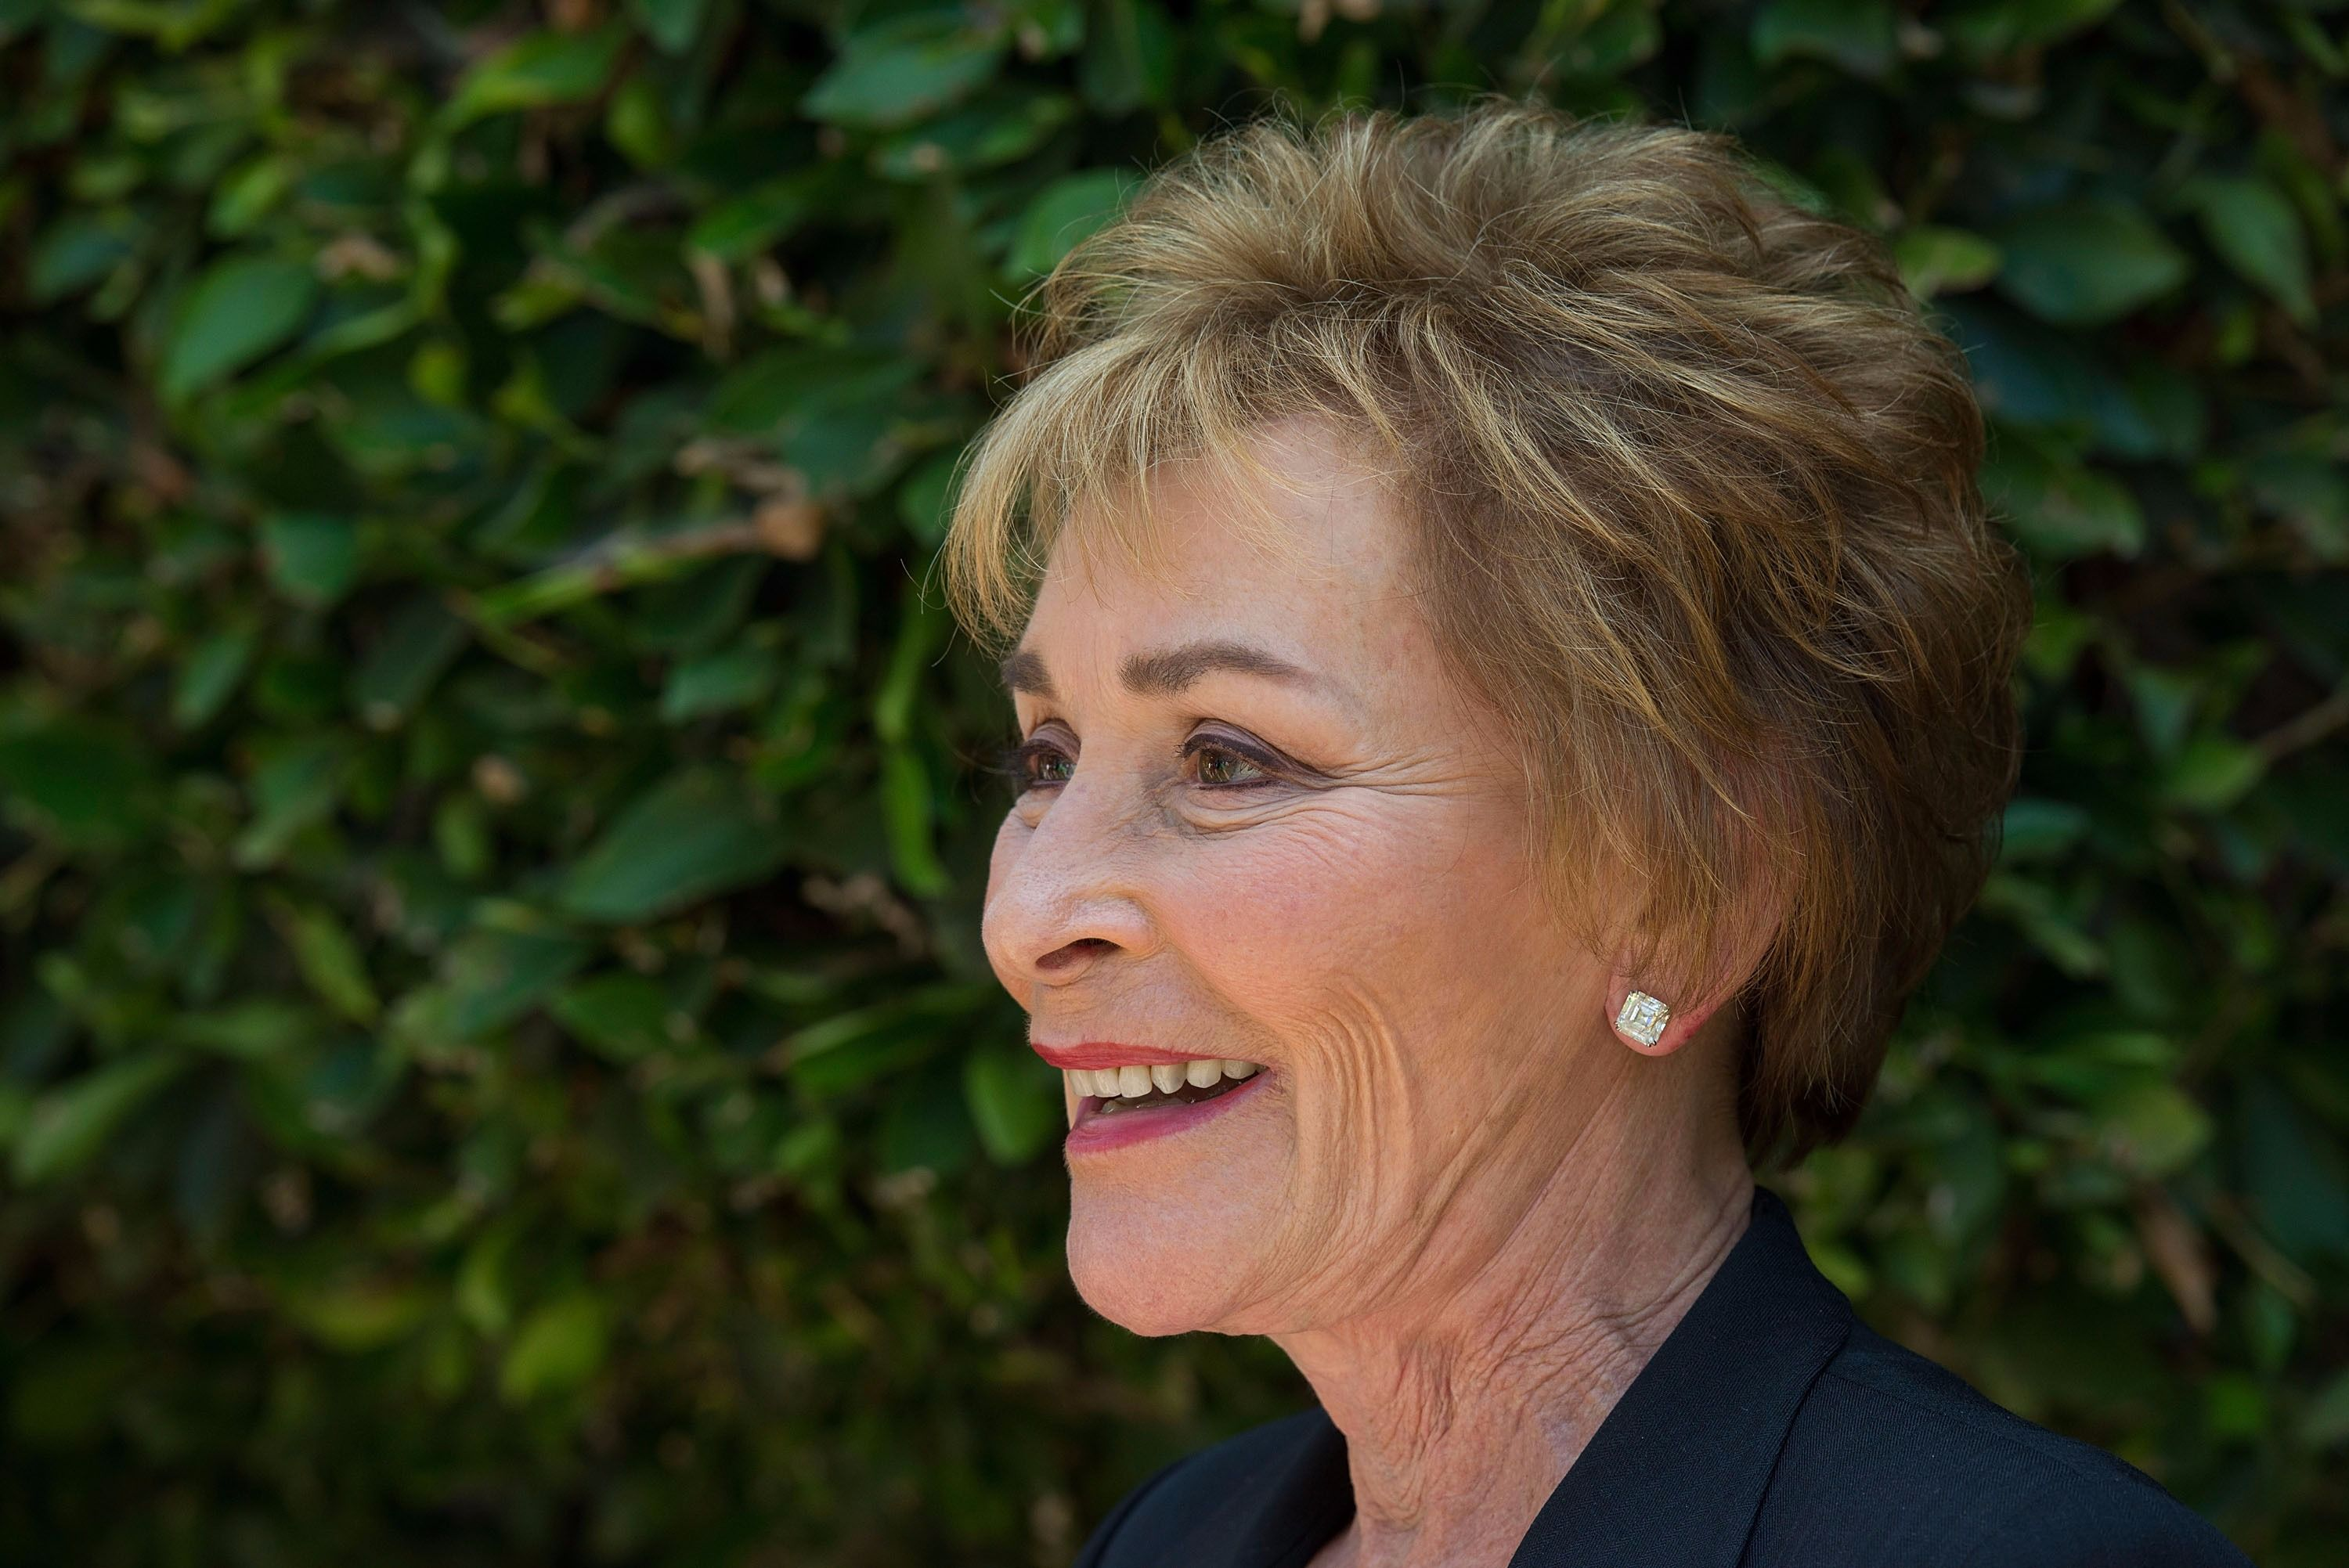 Judge Judy lets puppy make decision in the courtroom